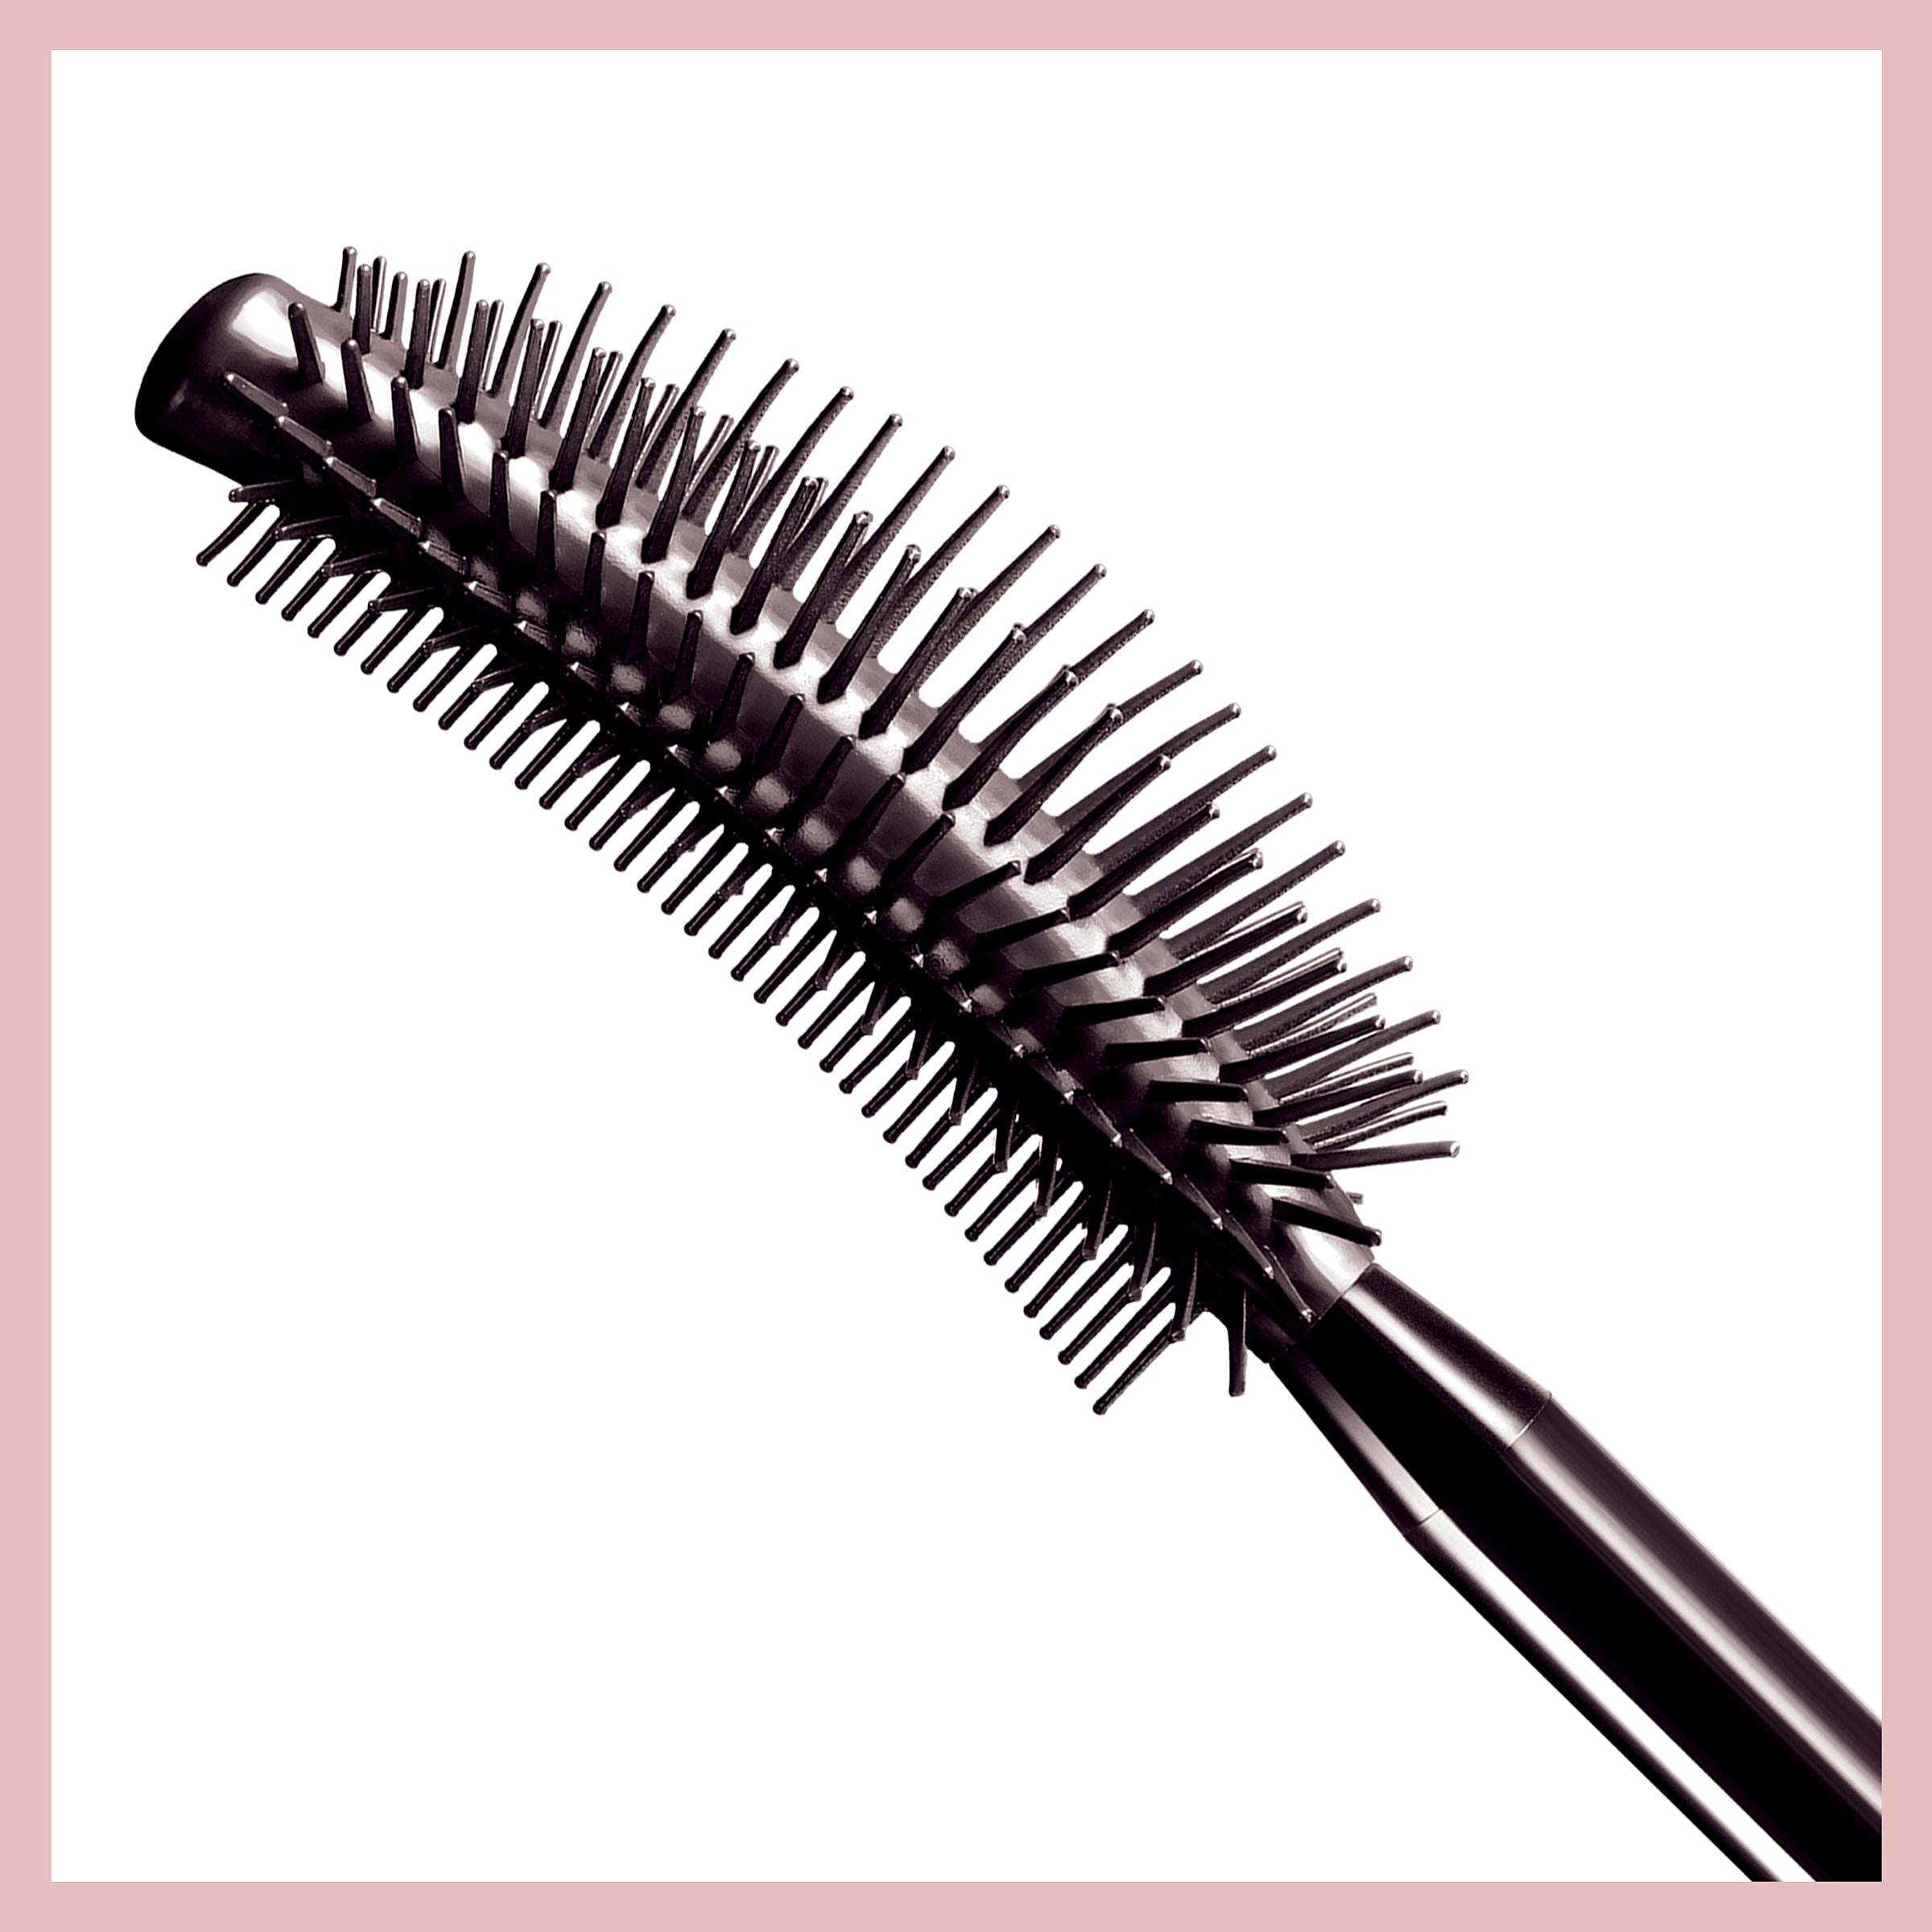 Maybelline Lash Sensational Waterproof Mascara, Very Black, 0.3 fl. oz.black